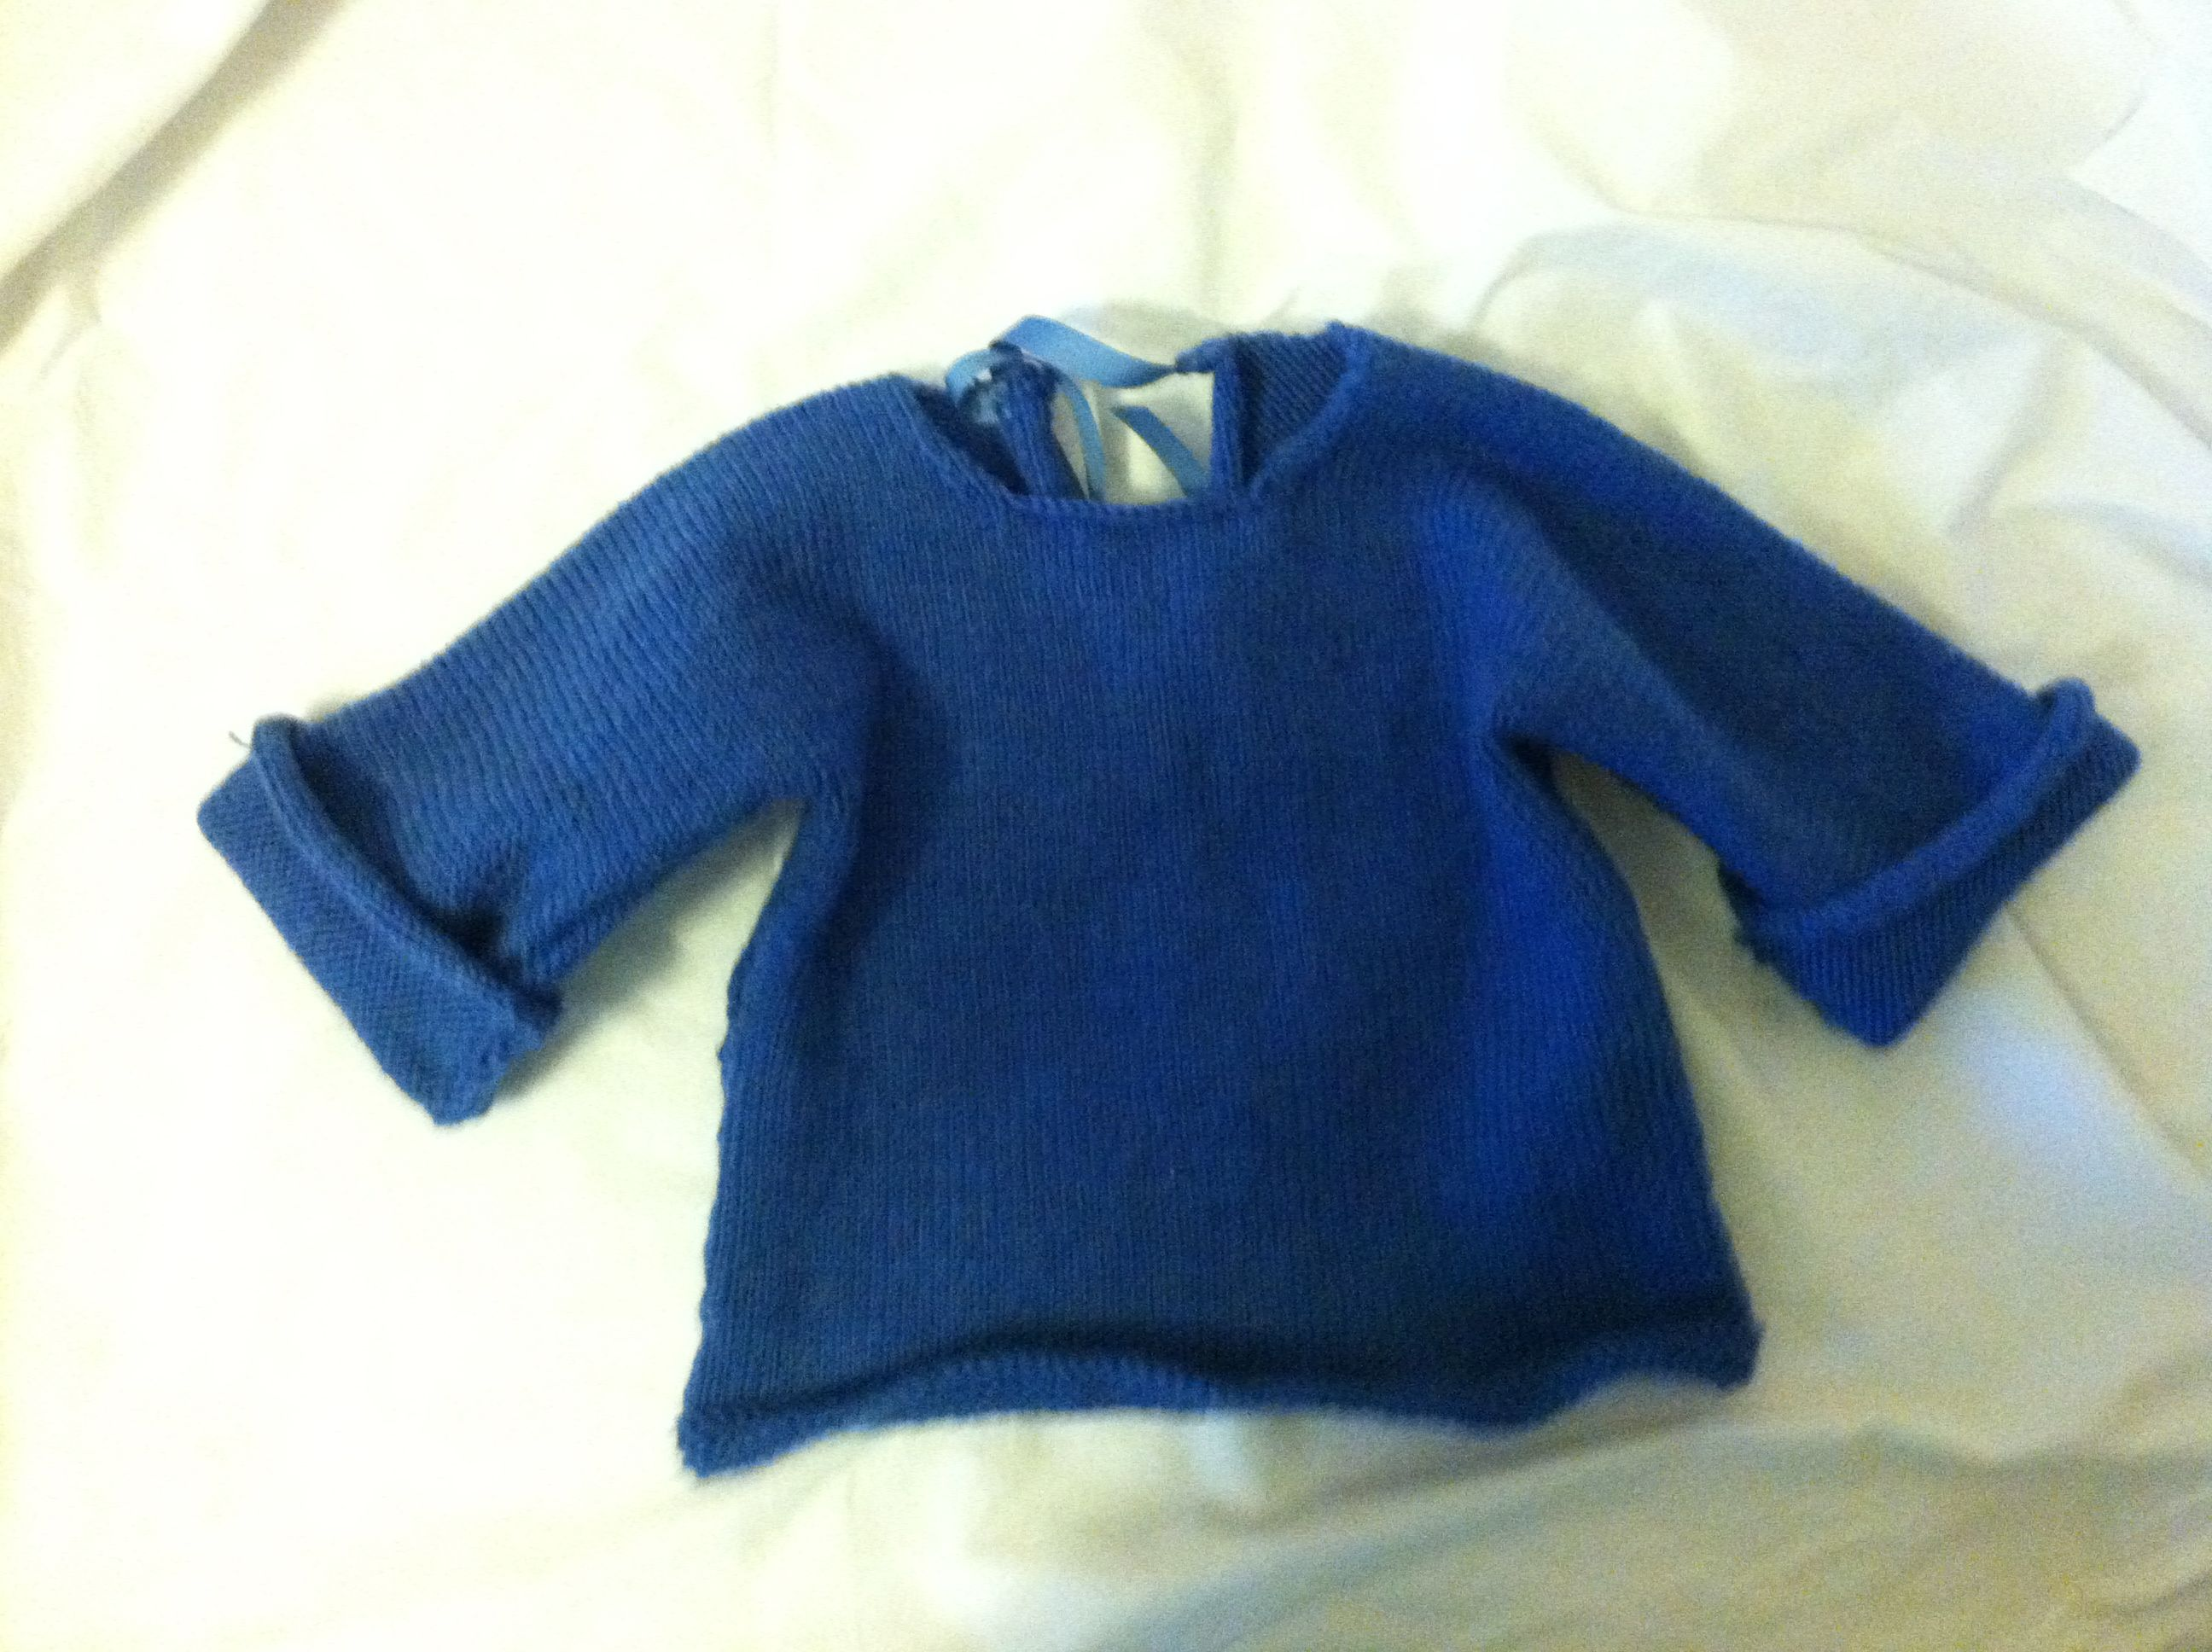 4fadb8f42fef64 Knit Baby sweater. Pattern from simple knits for cherished babies by Erika  knight.